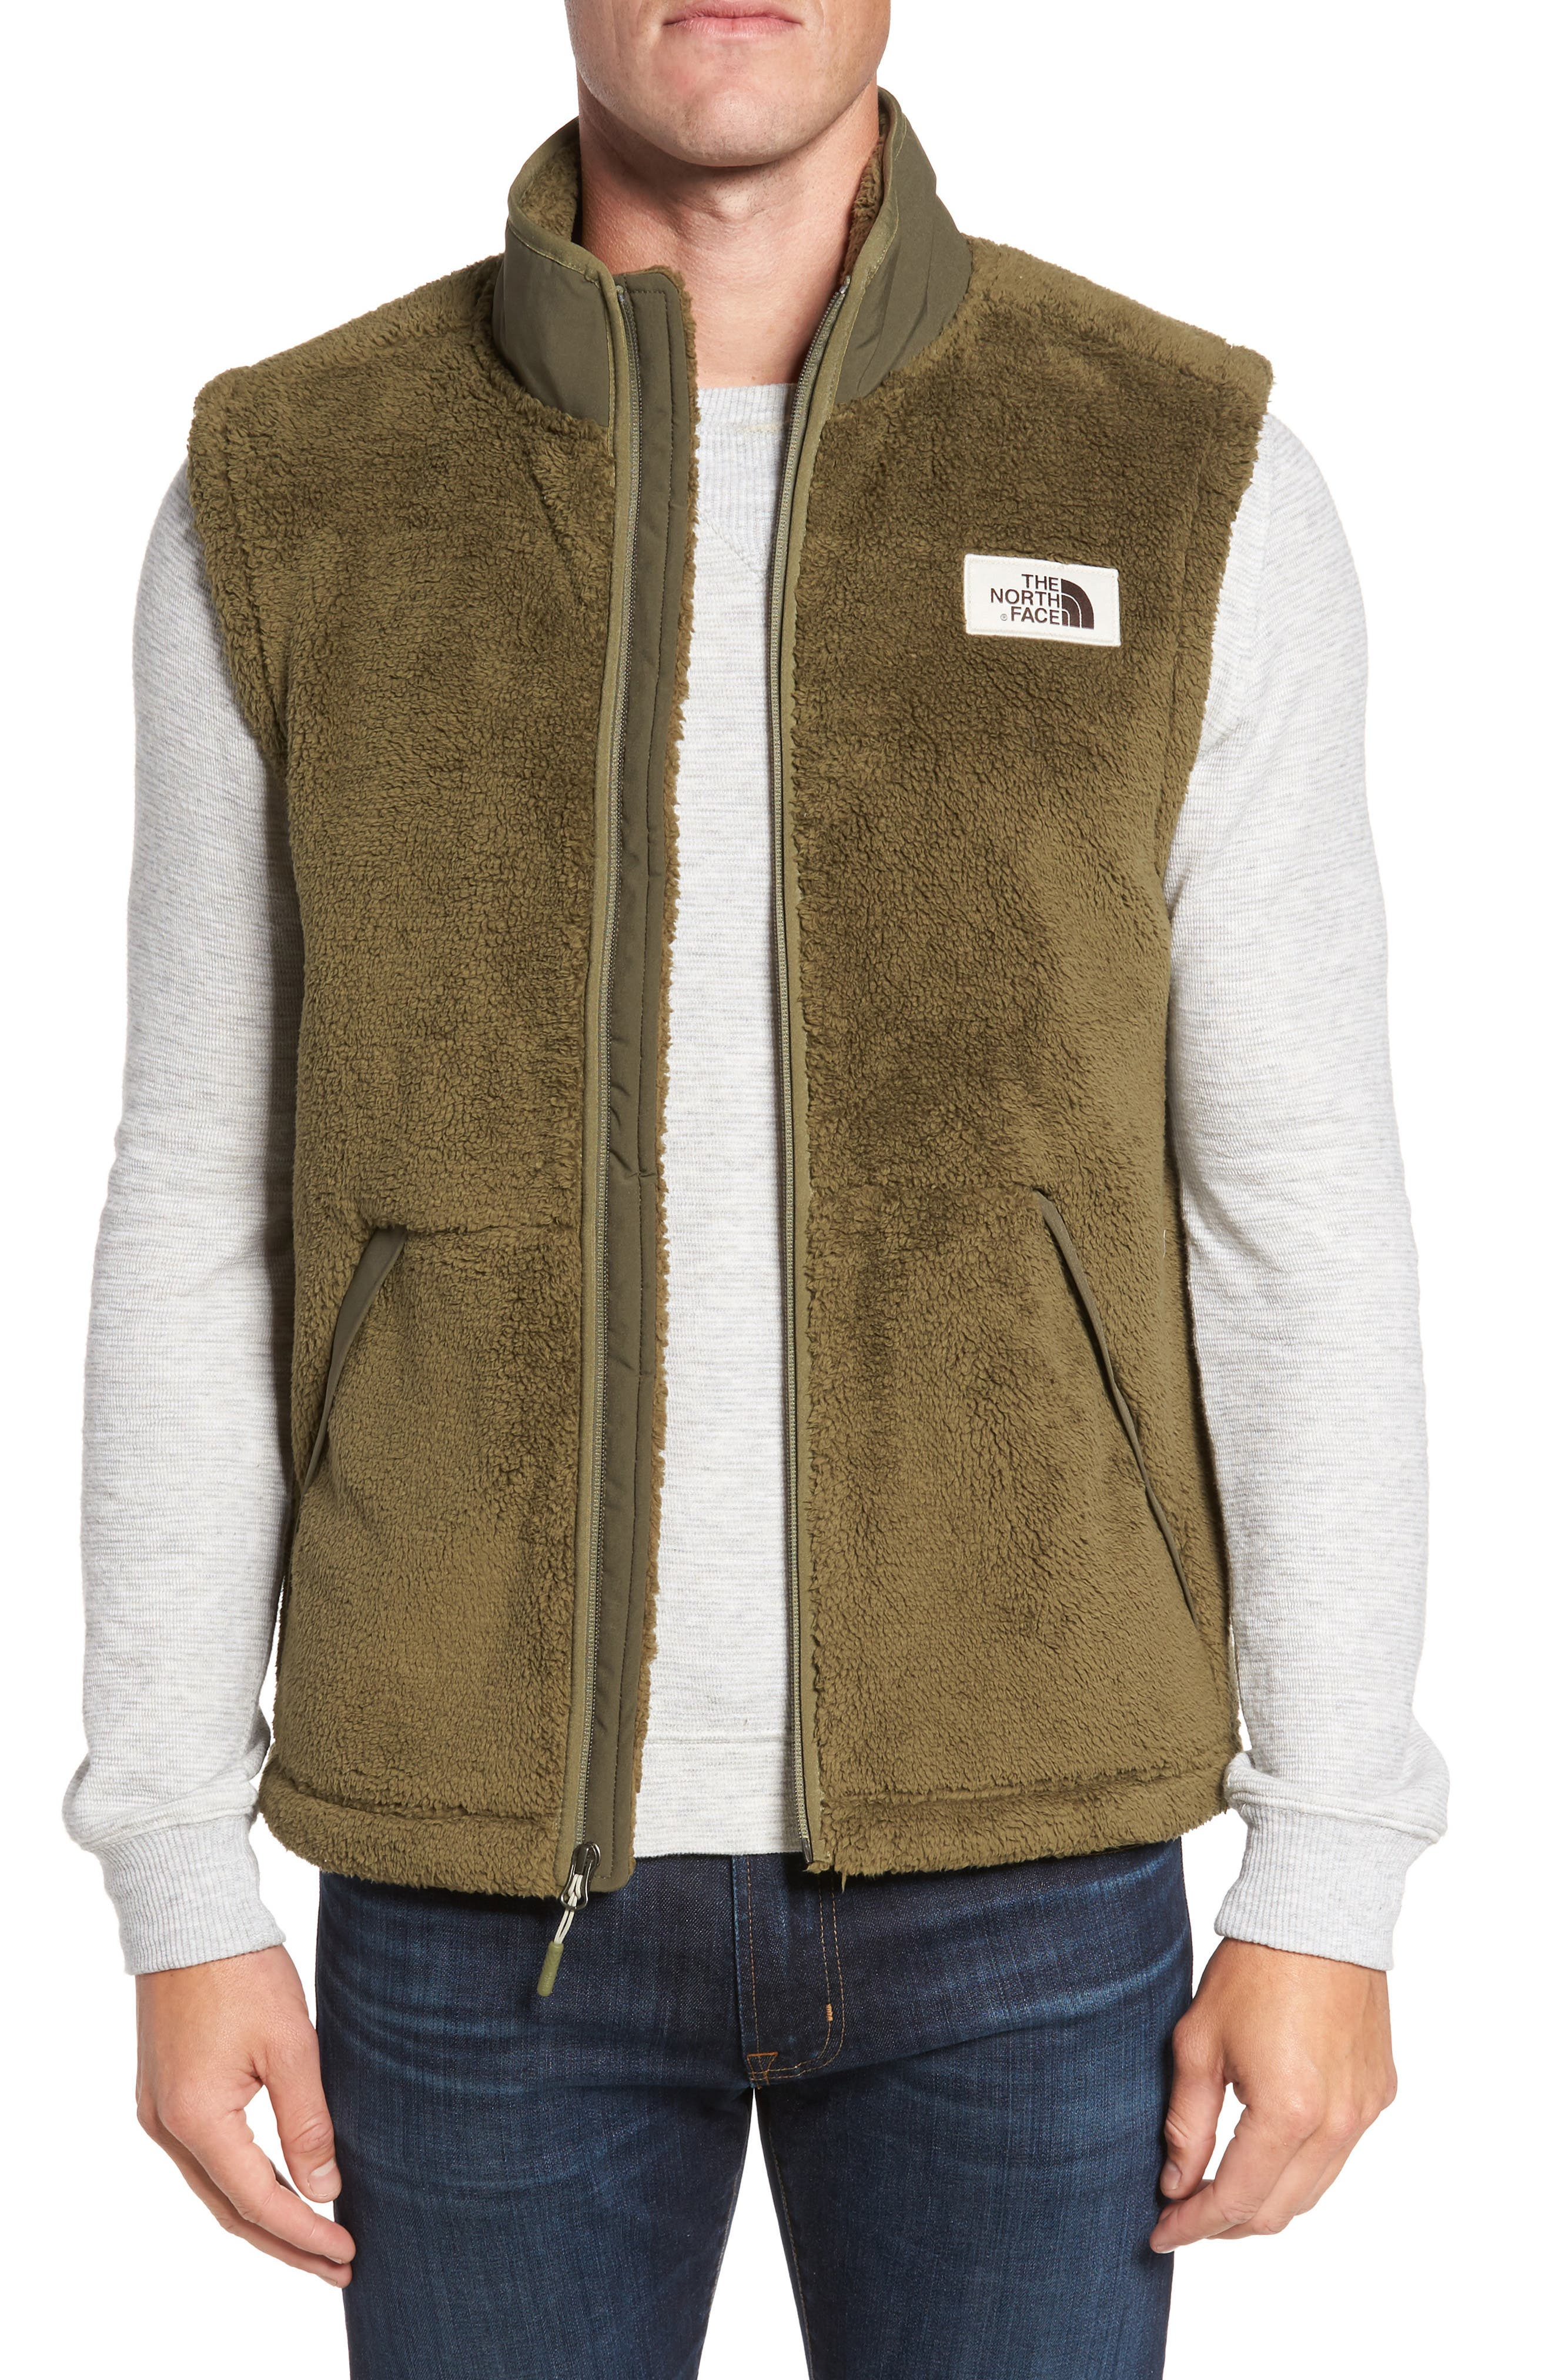 Main Image - The North Face Campshire Fleece Vest